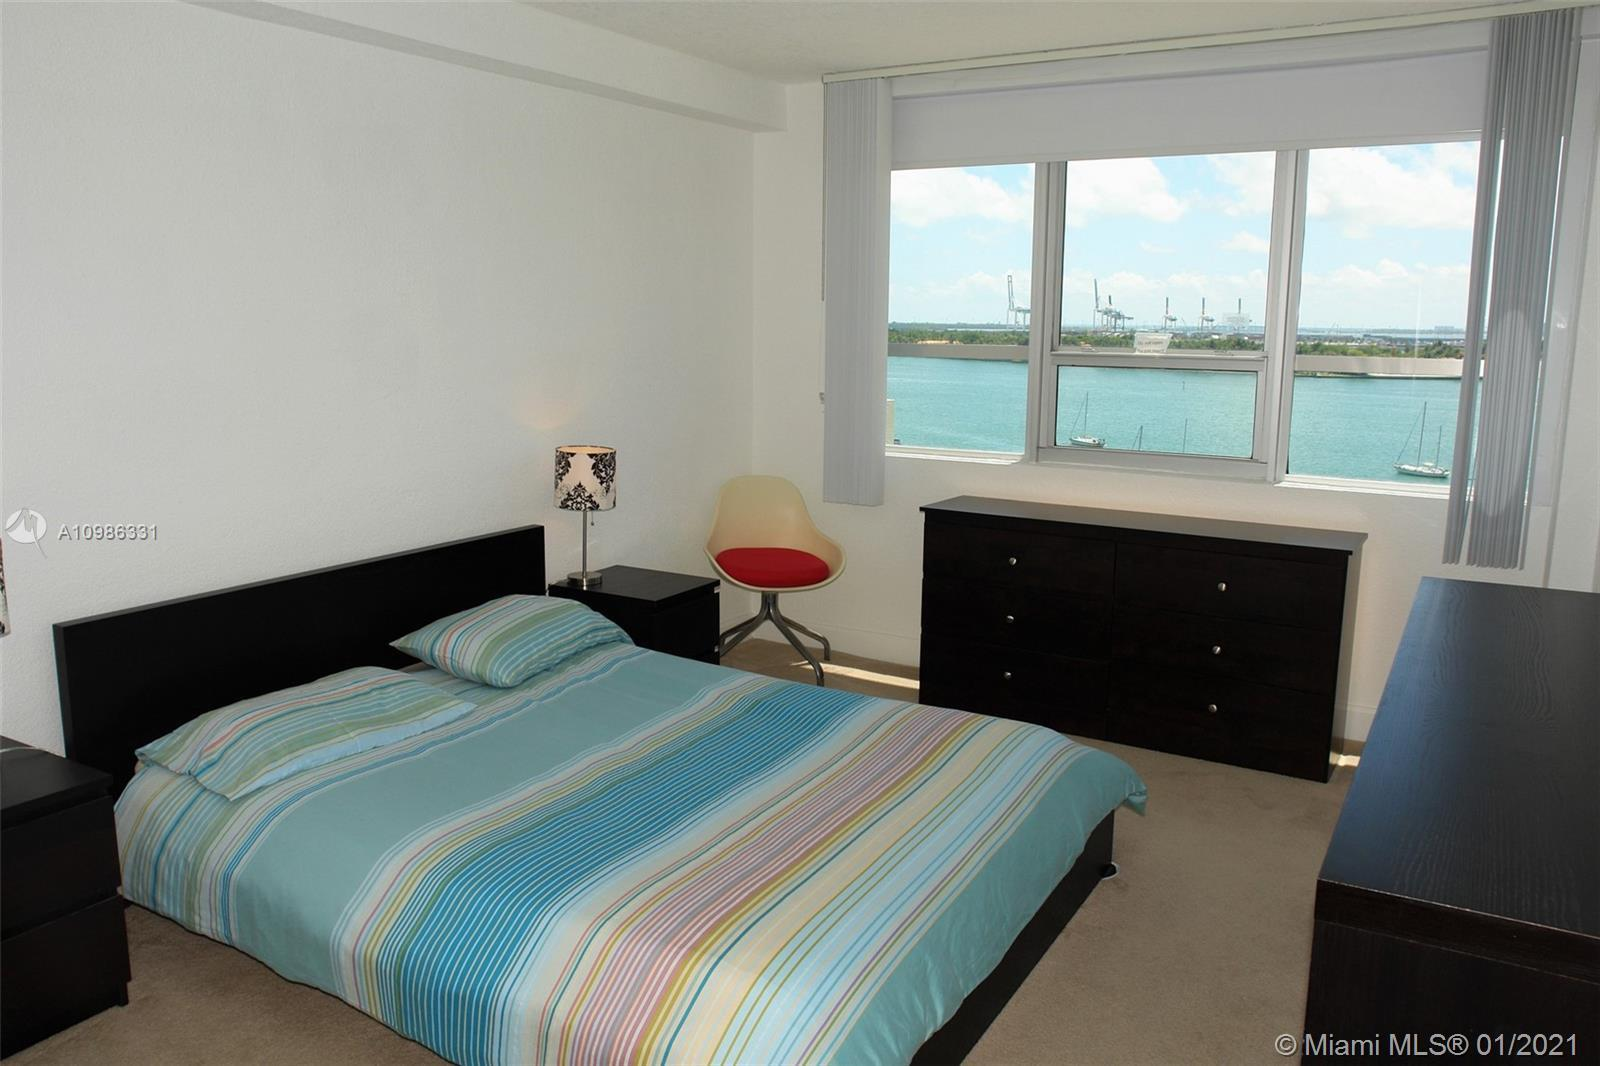 Amazing 2BR/2B condo in the Heart of South Beach, with beautiful Sunsets of the Miami Bay overlookin